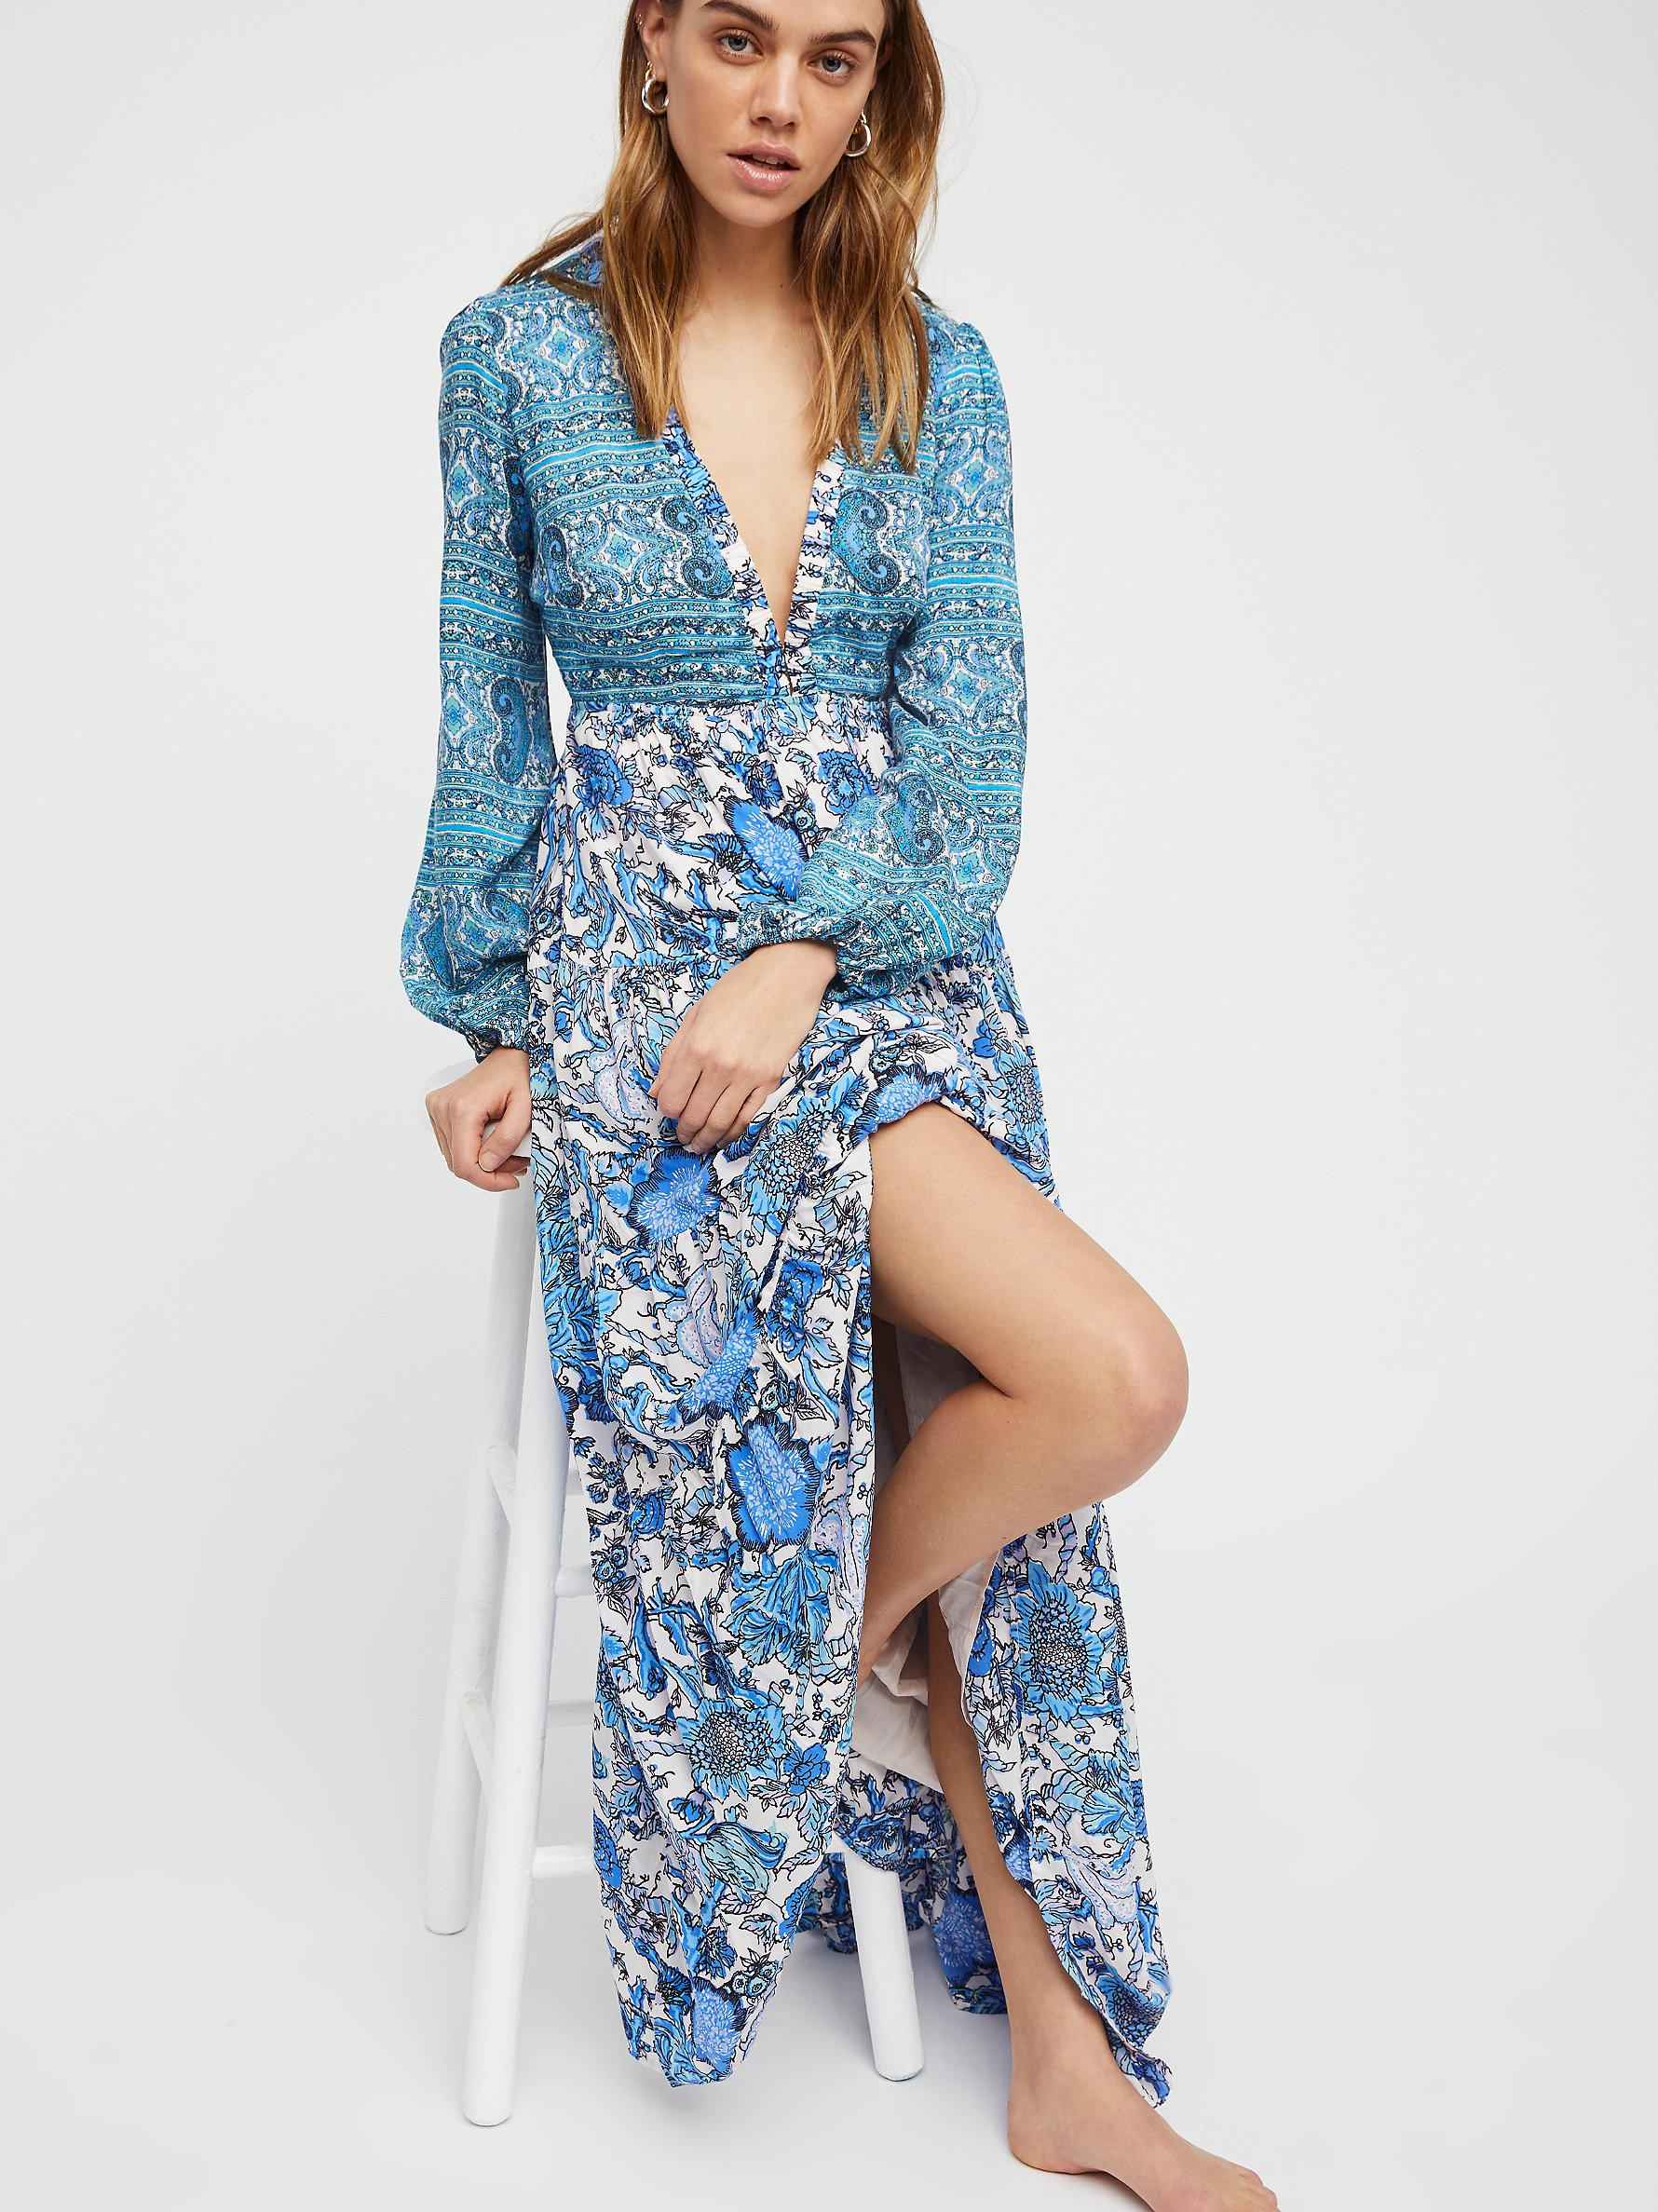 9acd38253a81 Free People Dove Long Sleeve Maxi Dress in Blue - Lyst